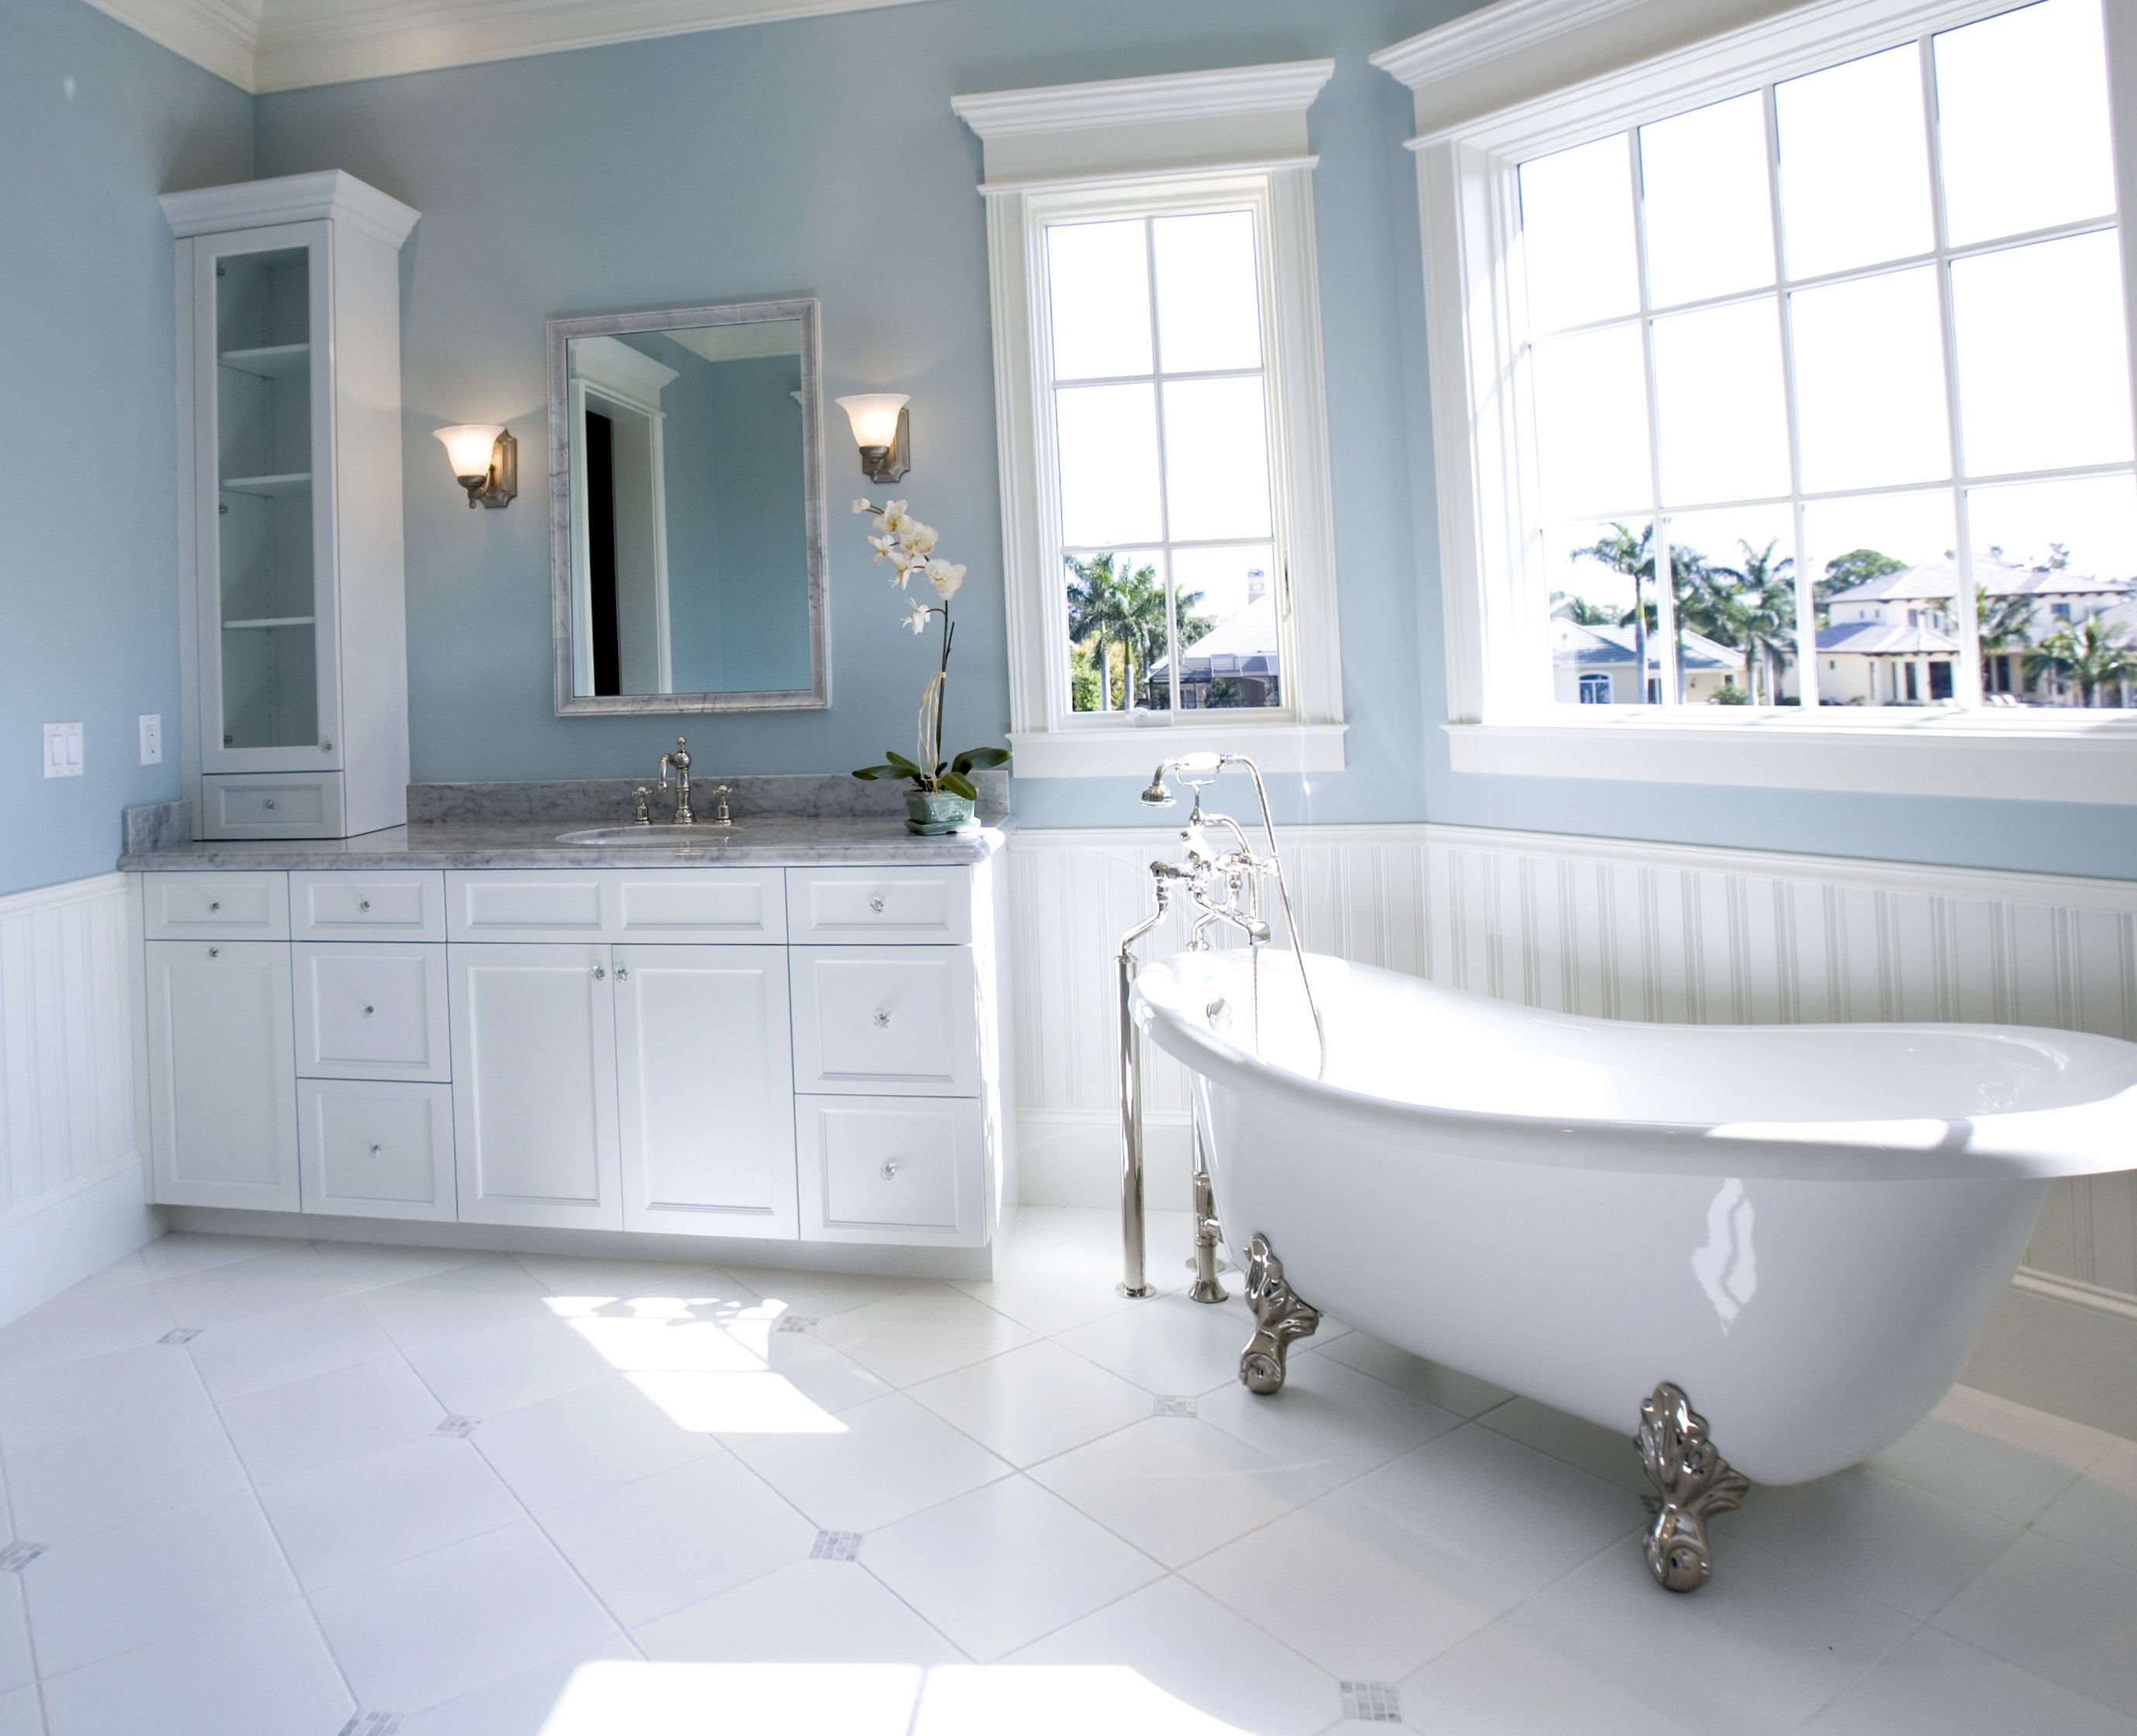 Bathroom paint colors | Bathroom Design ideas 2017 | Coastal ...